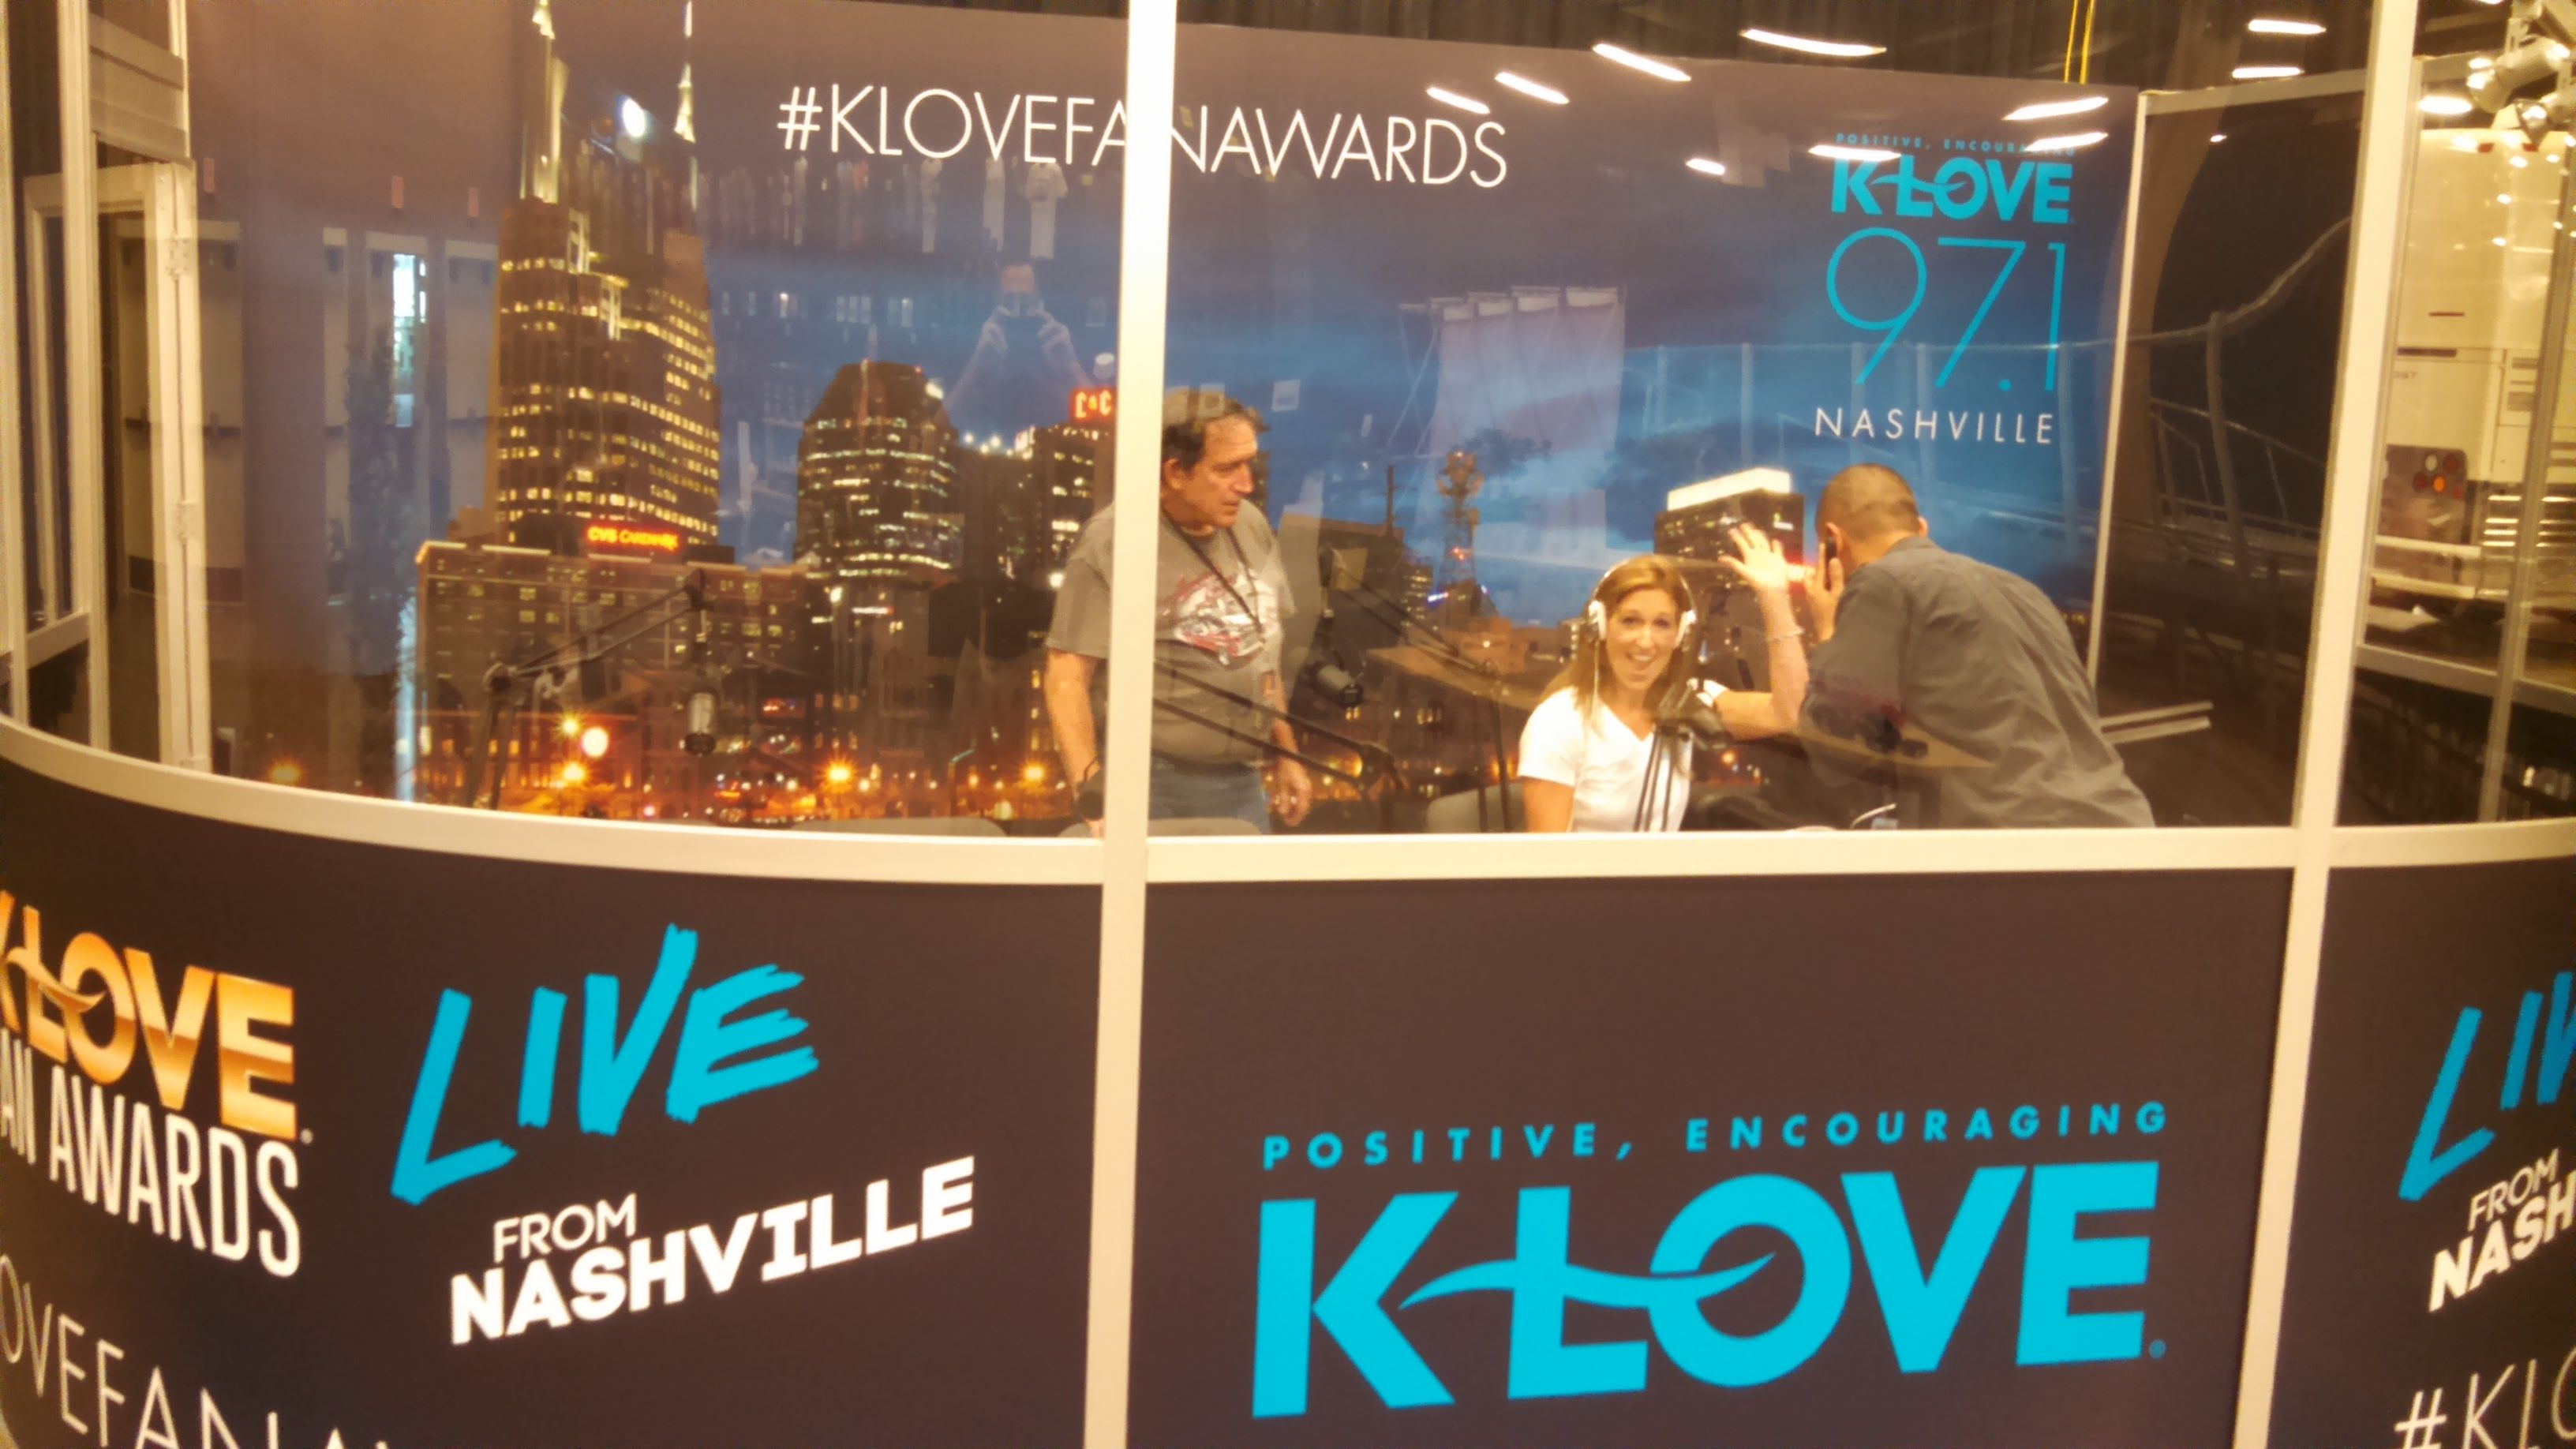 Broadcasting Live From The Klovefanawards Listen Online At Http Www Klove Com Listen Player Aspx Music Radio Christian Music Klove